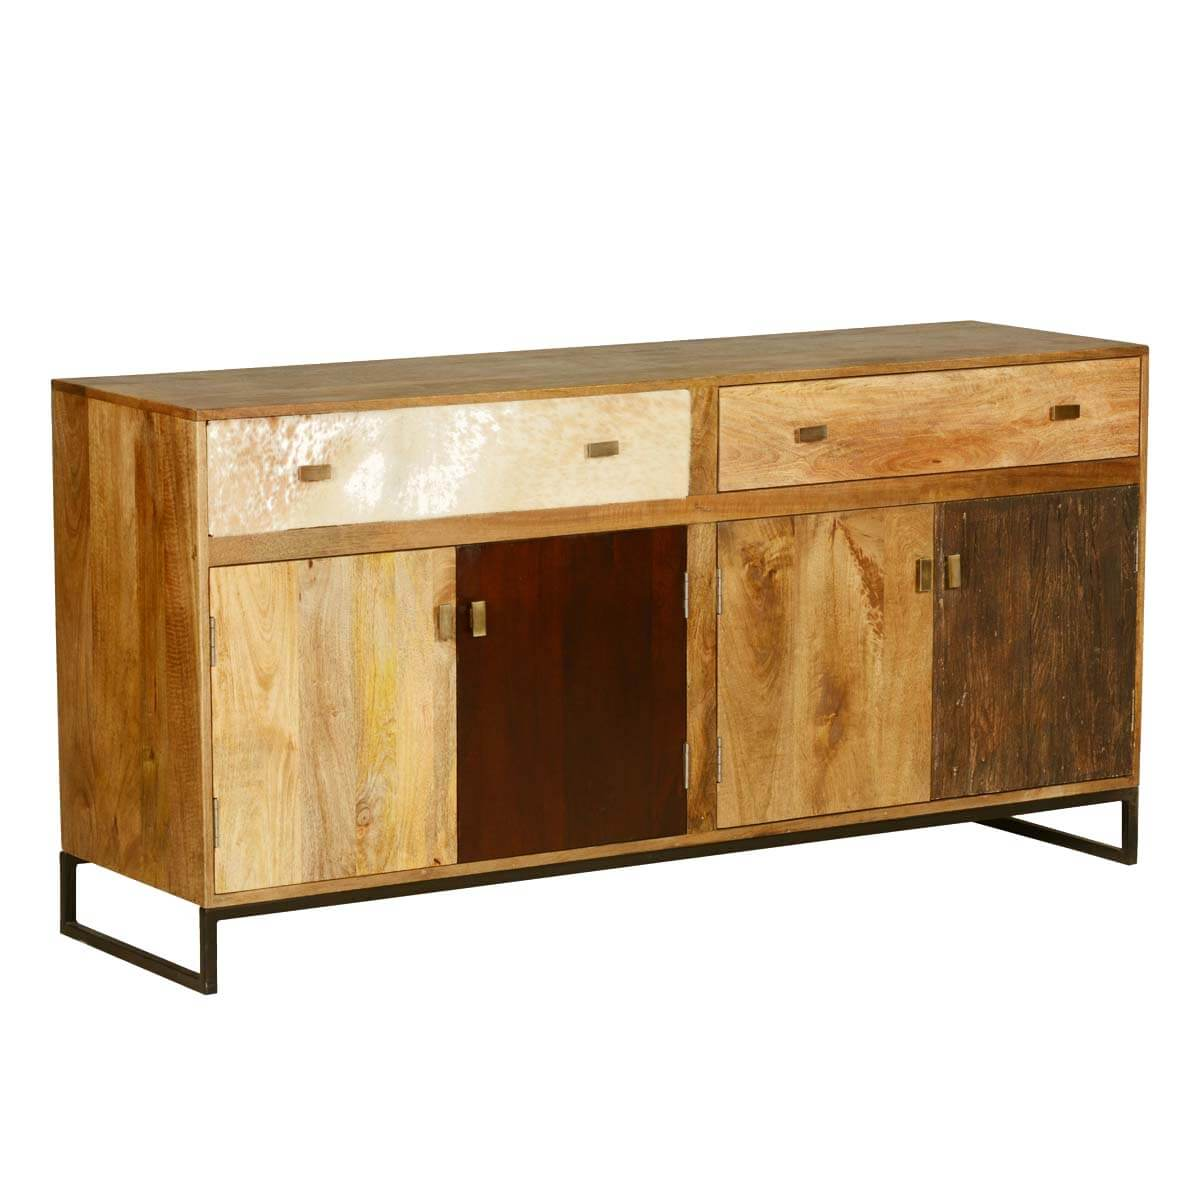 60 S Retro Rustic Mango Wood 2 Drawer Double Sideboard Cabinet